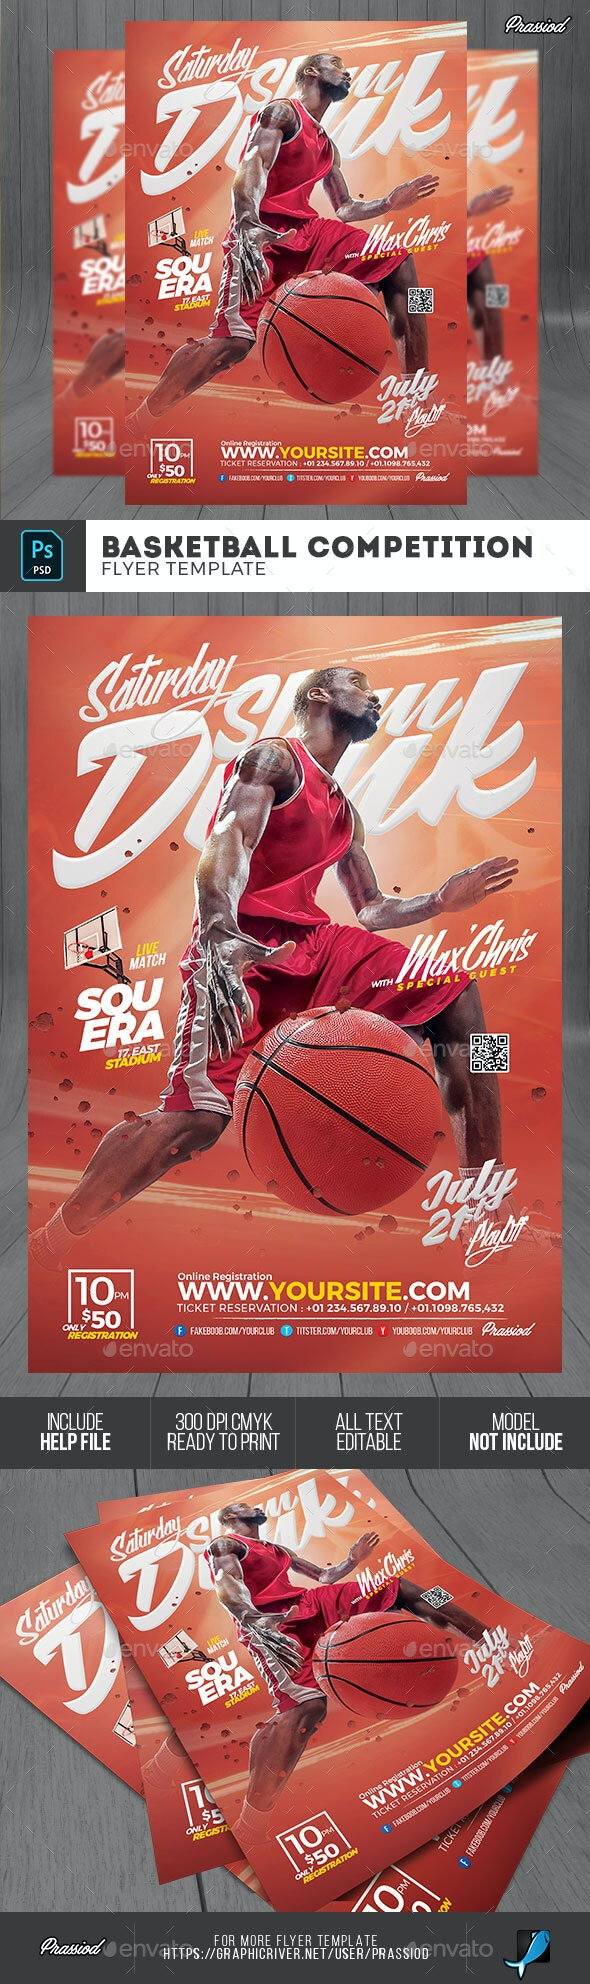 Basketball Competition Flyer Template - Sports Events